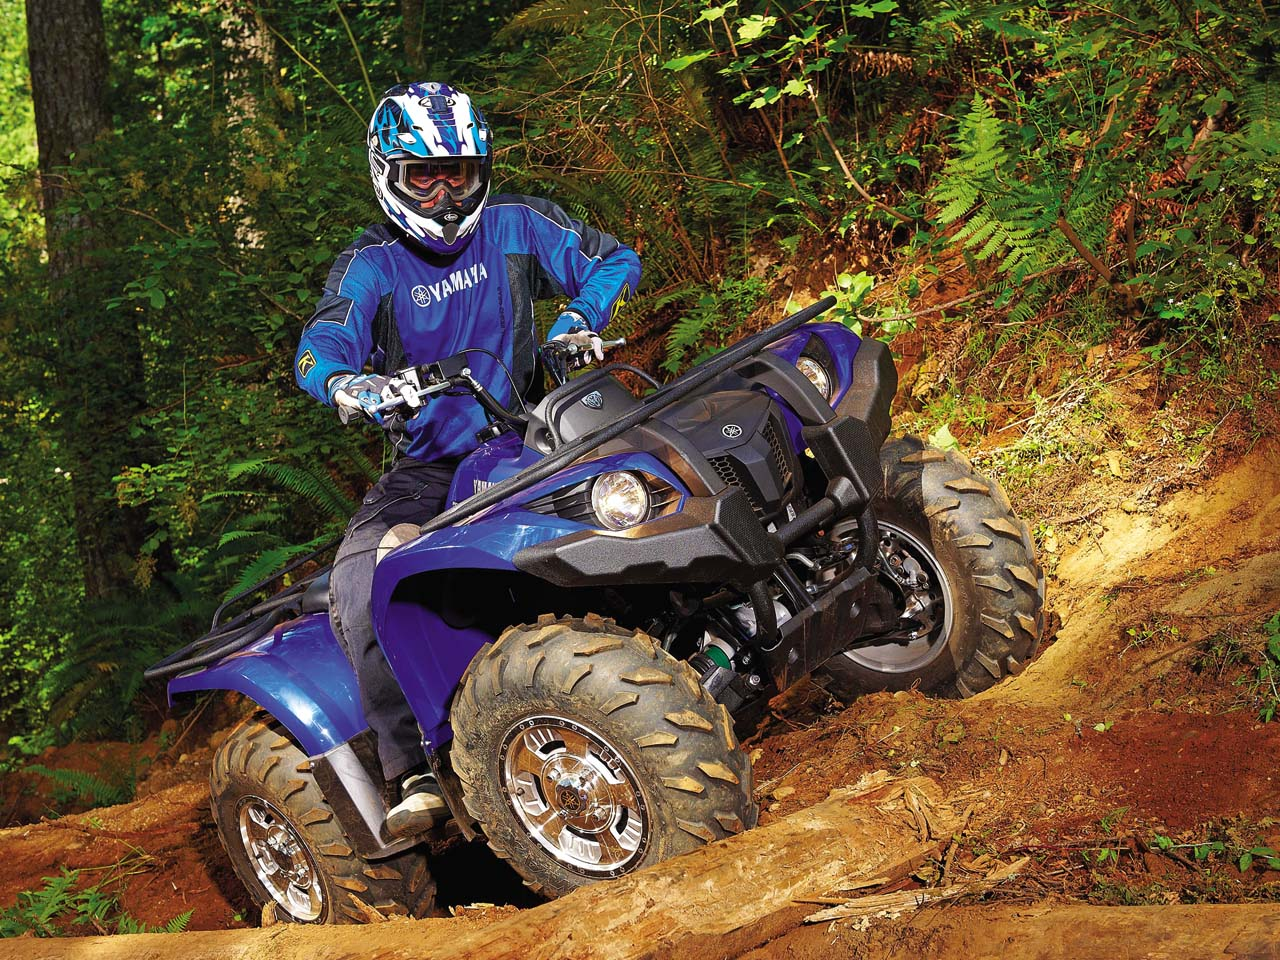 hight resolution of 2011 yamaha grizzly450eps front right blue rididng over